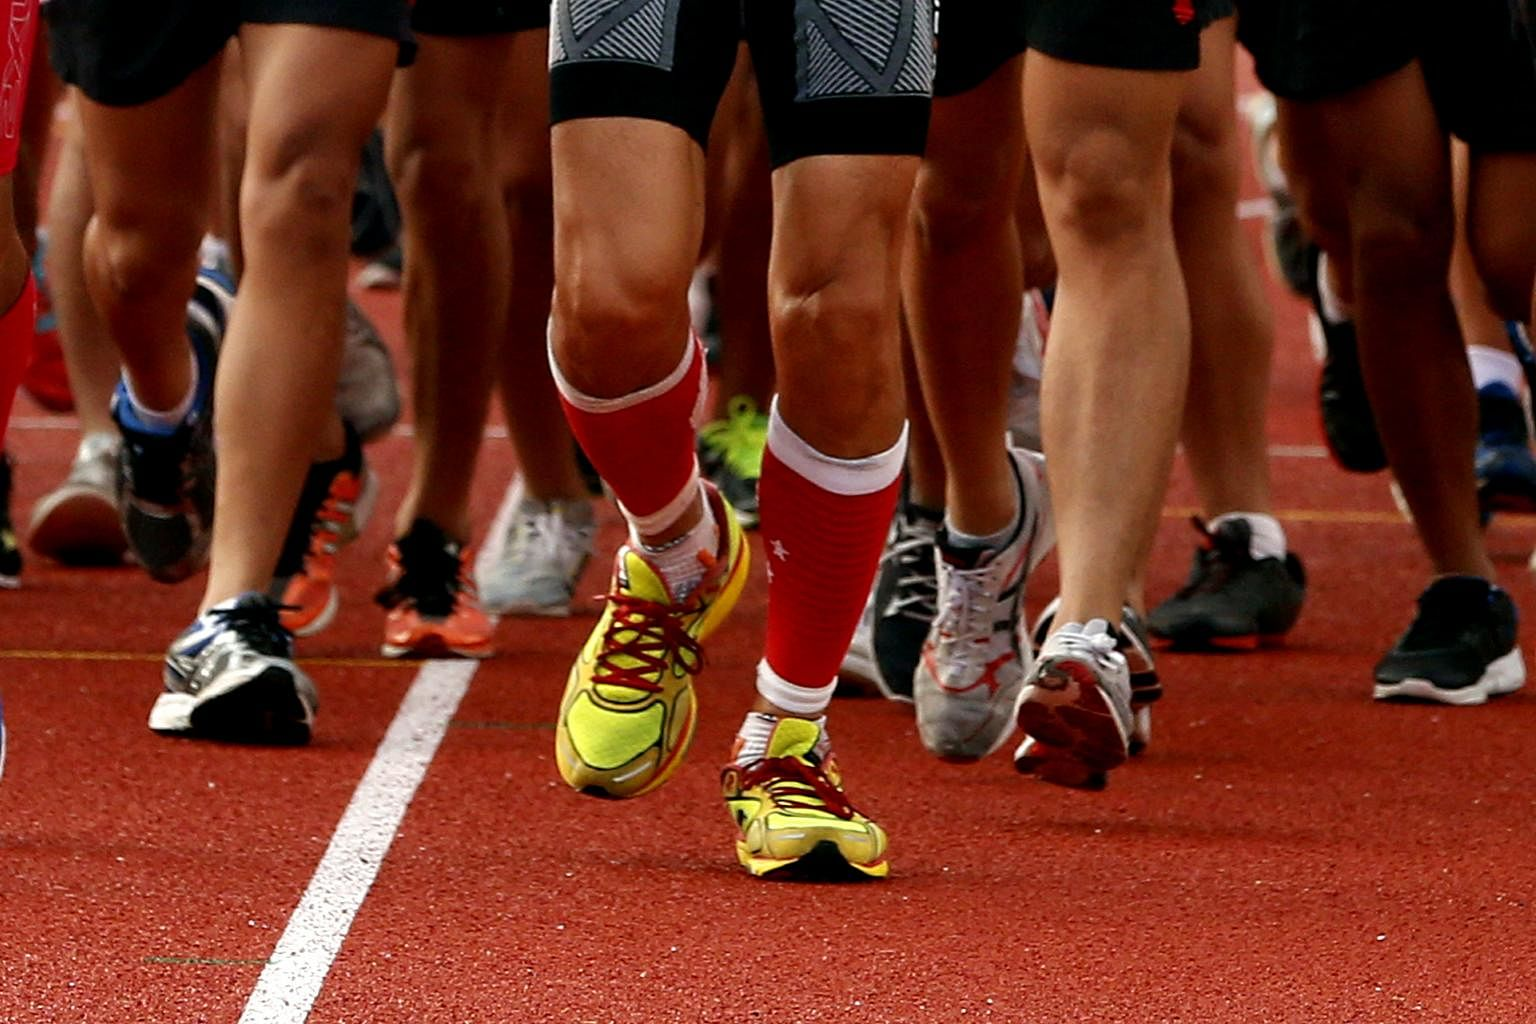 Sport Singapore Partners With Dow To Turn 300 000 Used Shoes Into Rubber Granules For Jogging Tracks Playgrounds Sport News Top Stories The Straits Times